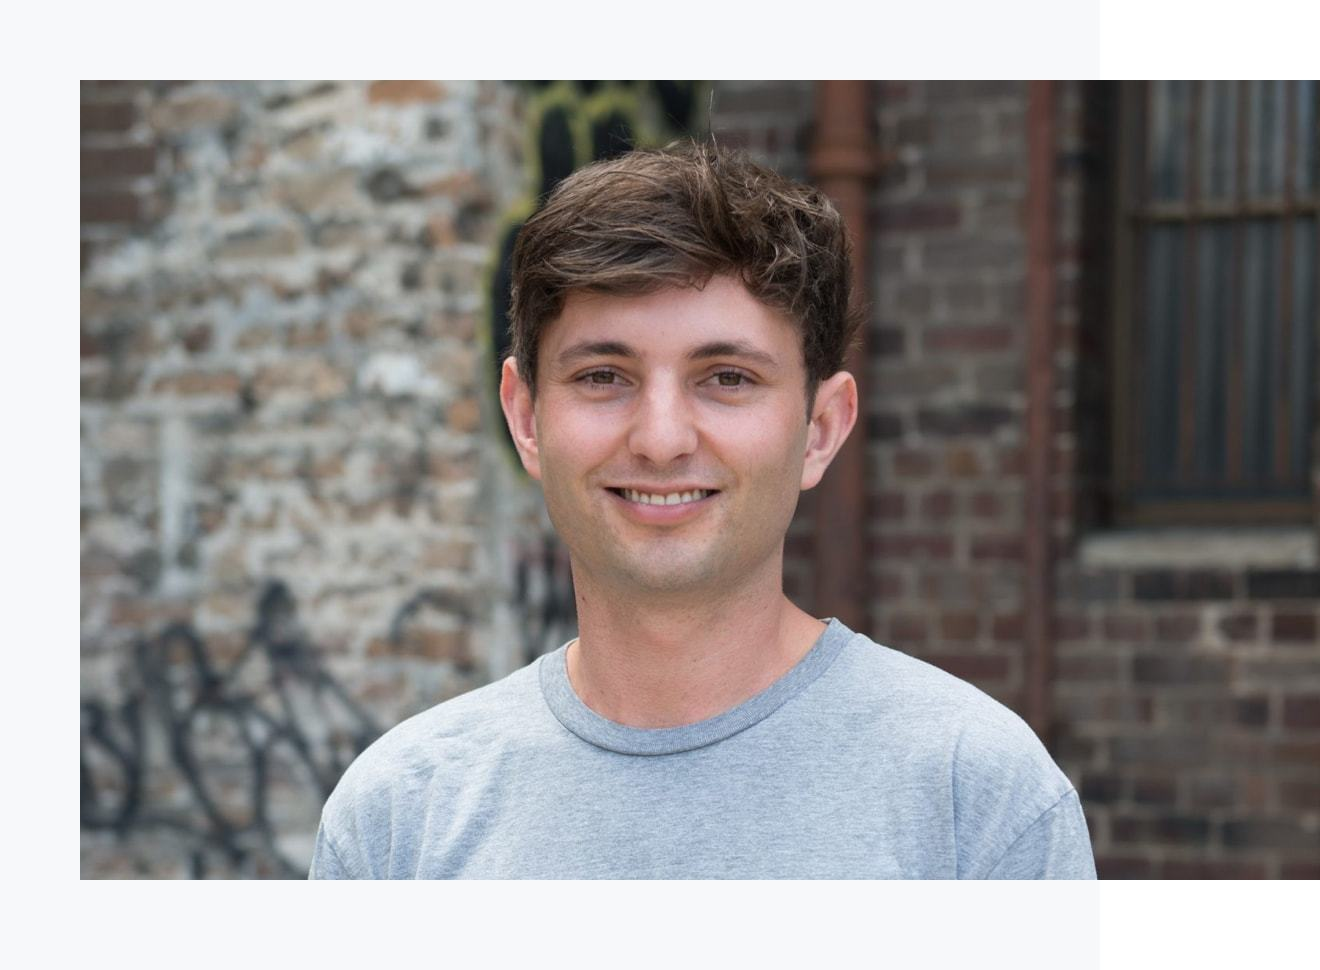 Jared Kristensen, co-founder and CEO of Audience Republic